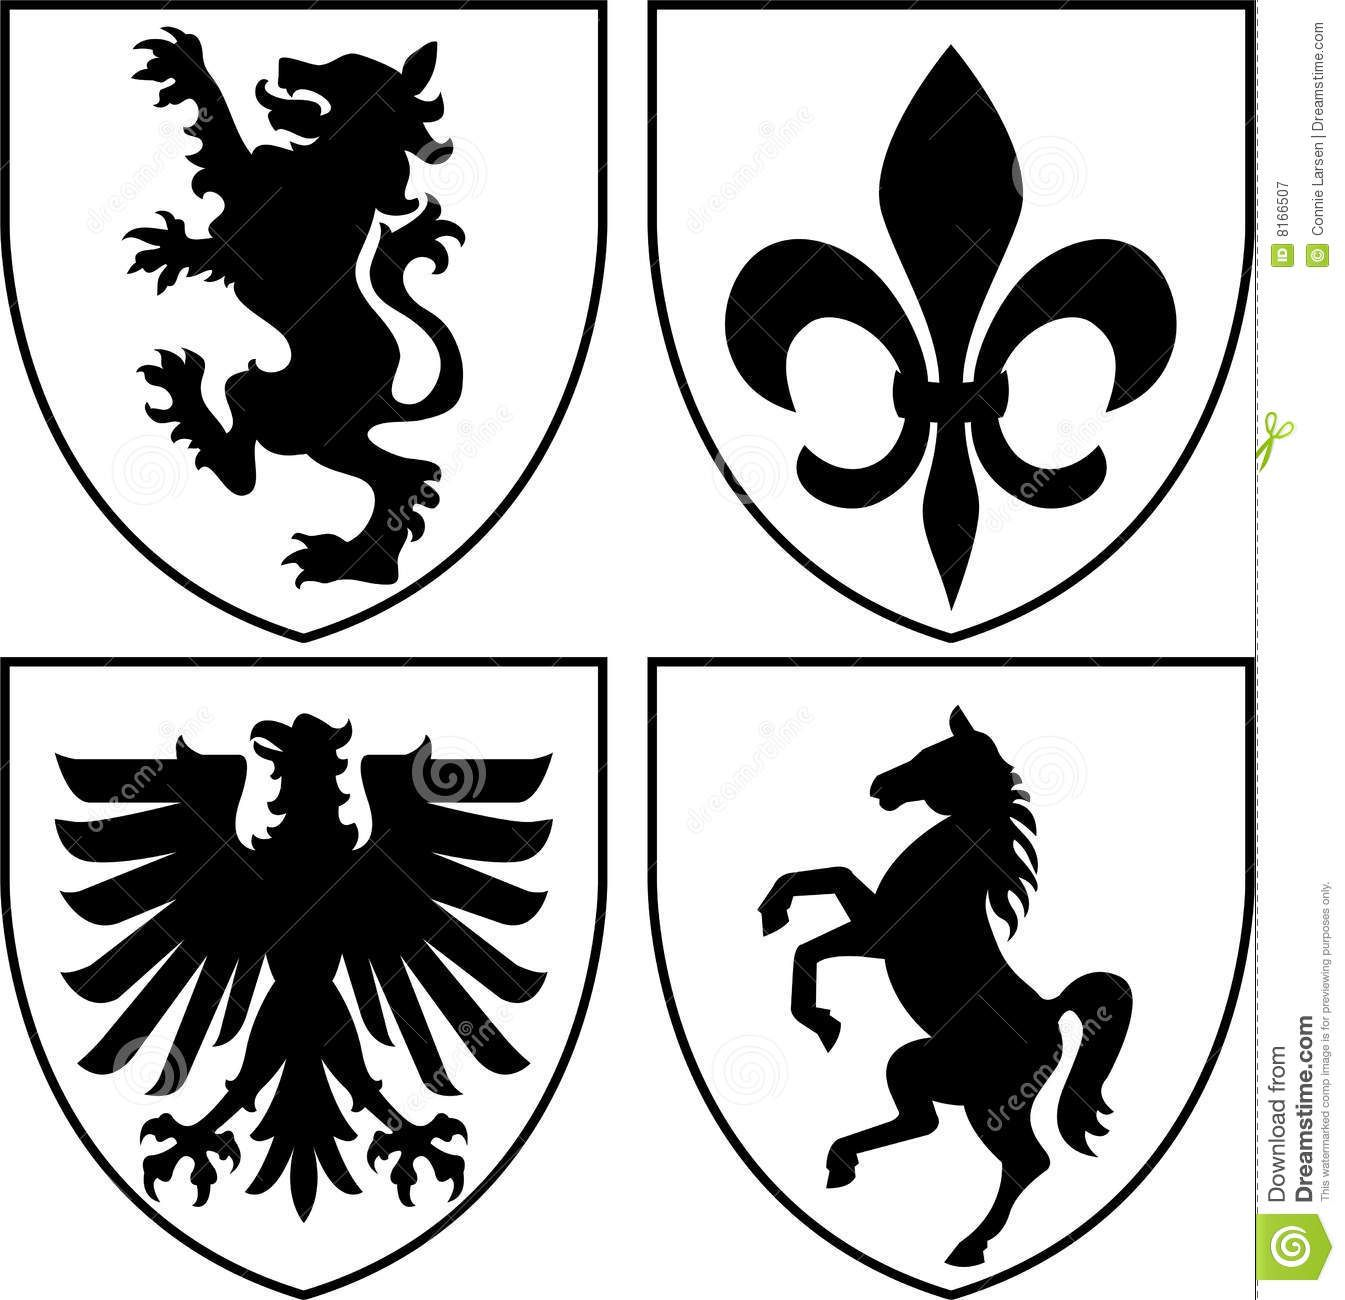 Heraldic Crests Coat Of Arms Eps Royalty Free Stock